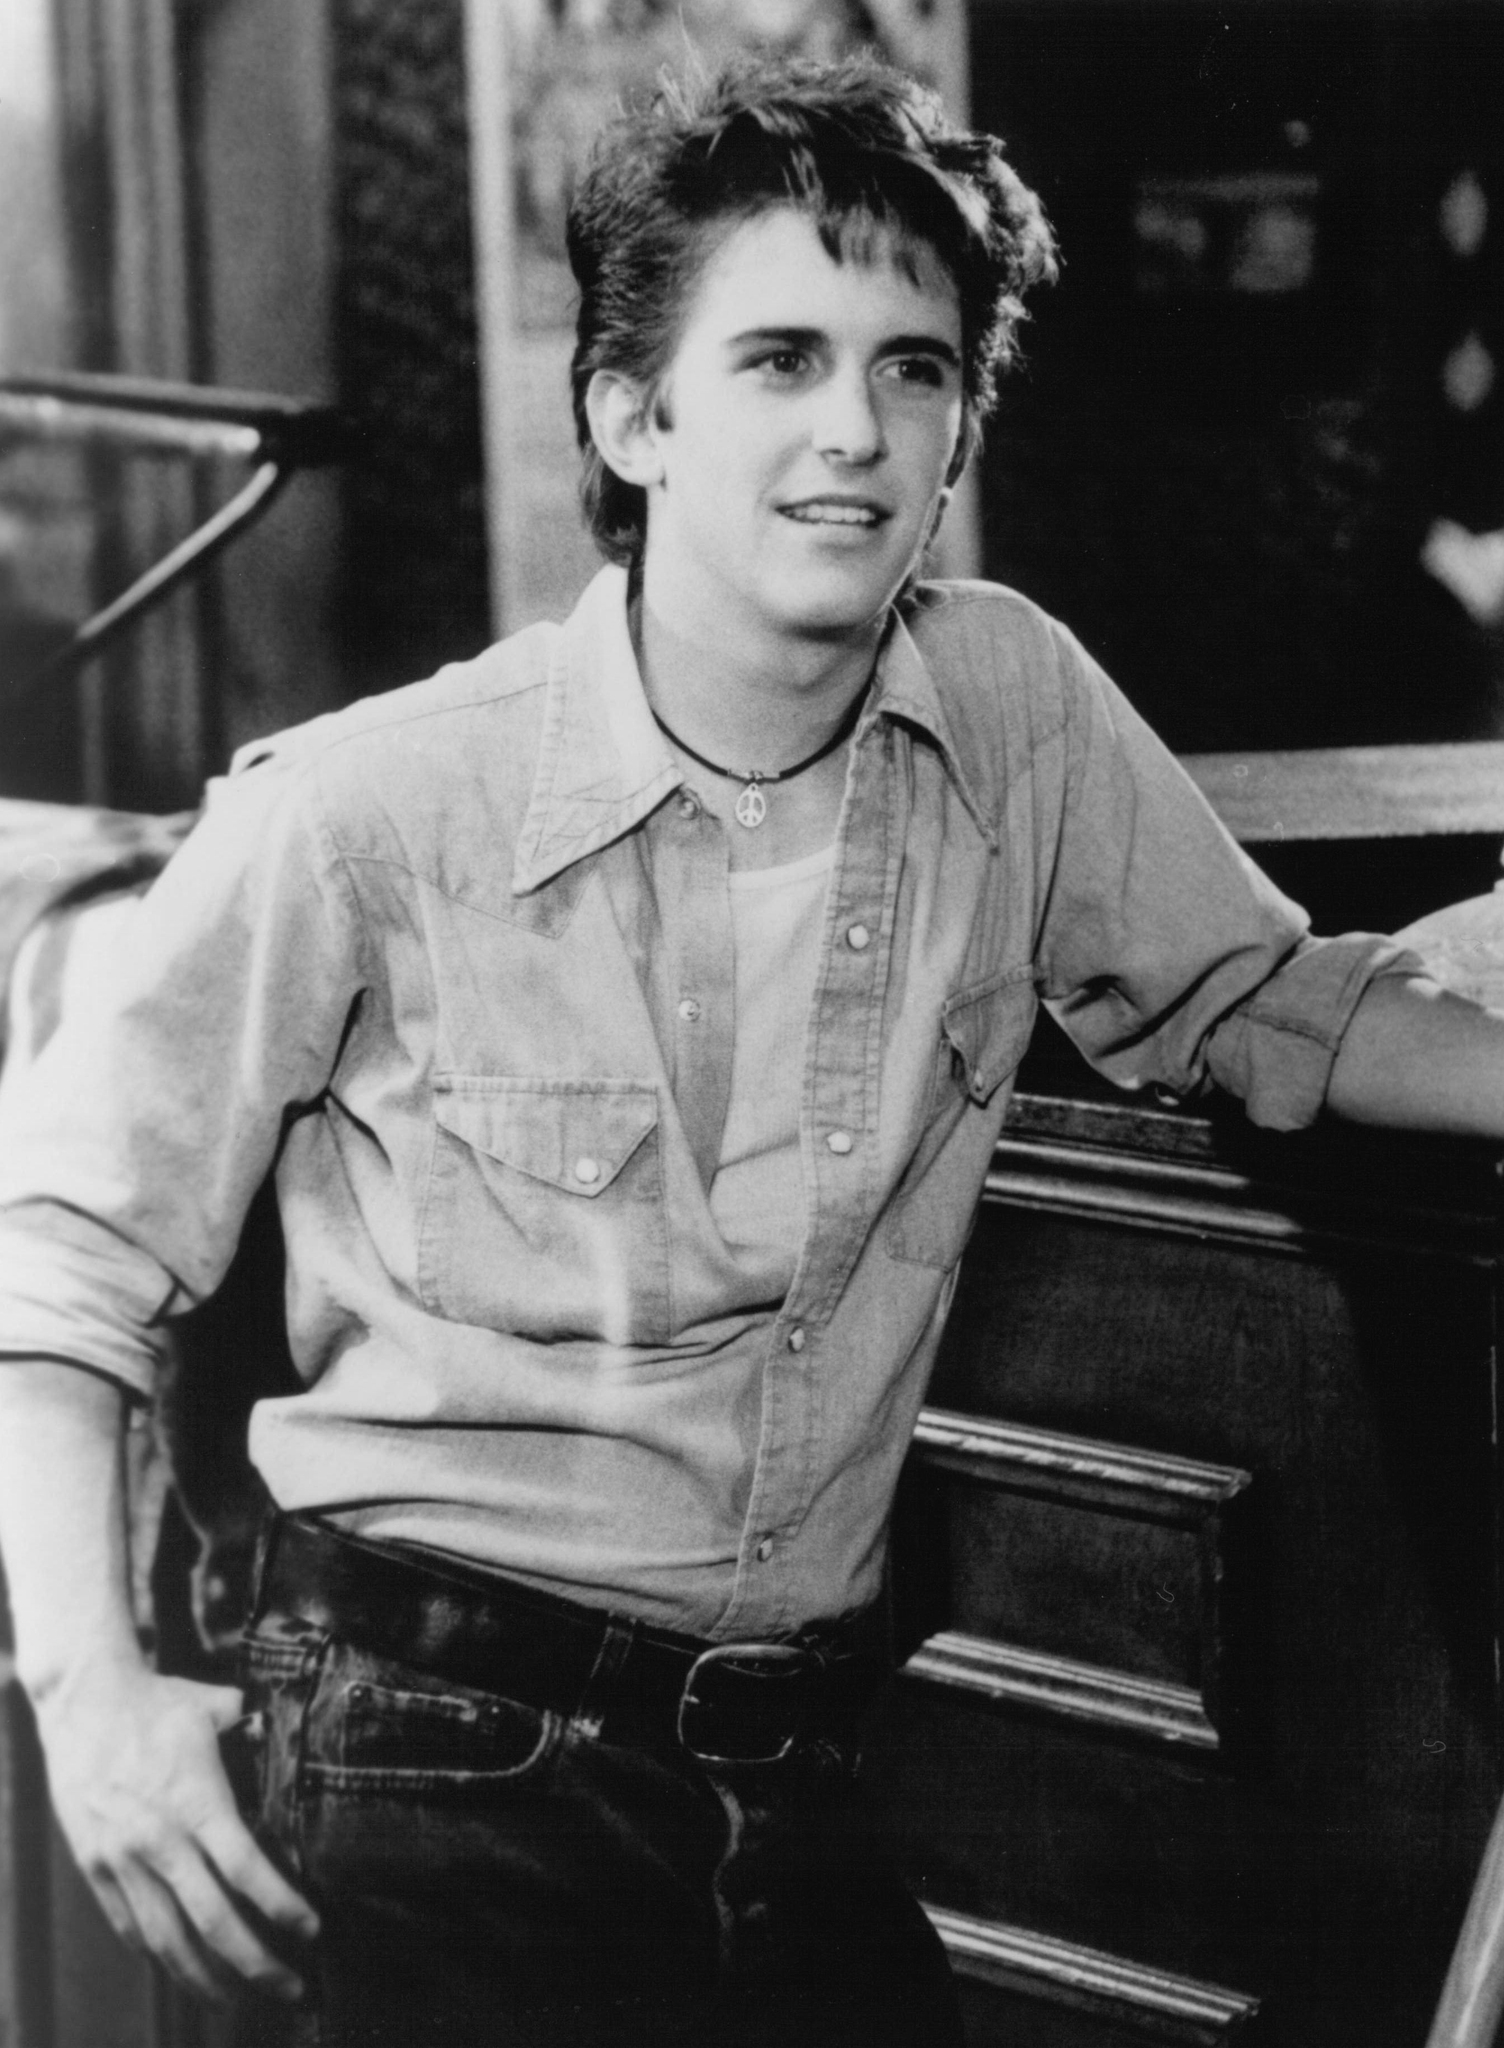 Charlie Schlatter in Heartbreak Hotel (1988)